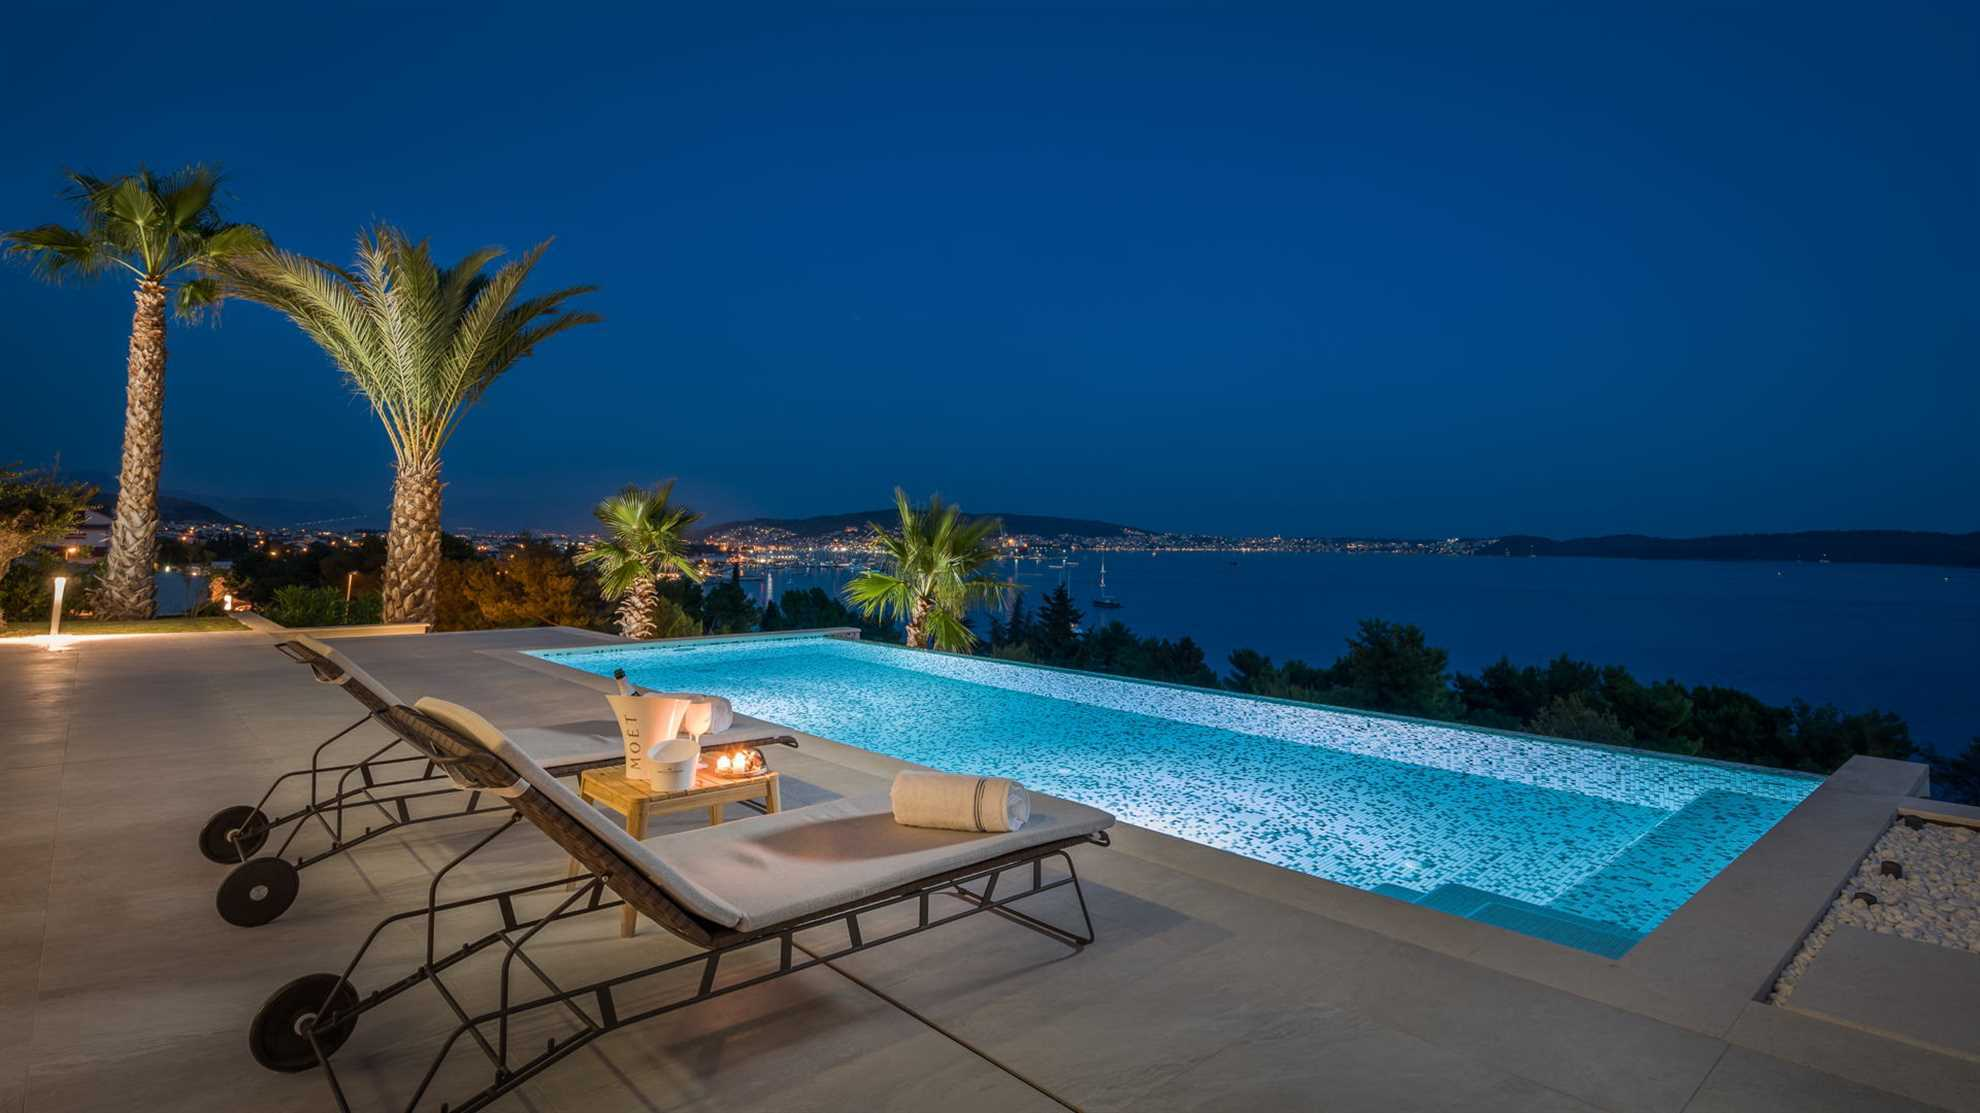 Swimming pool View at night, Ultraluxury Villa Elyzeum with Heated Pool in Trogir, Central Dalmatia